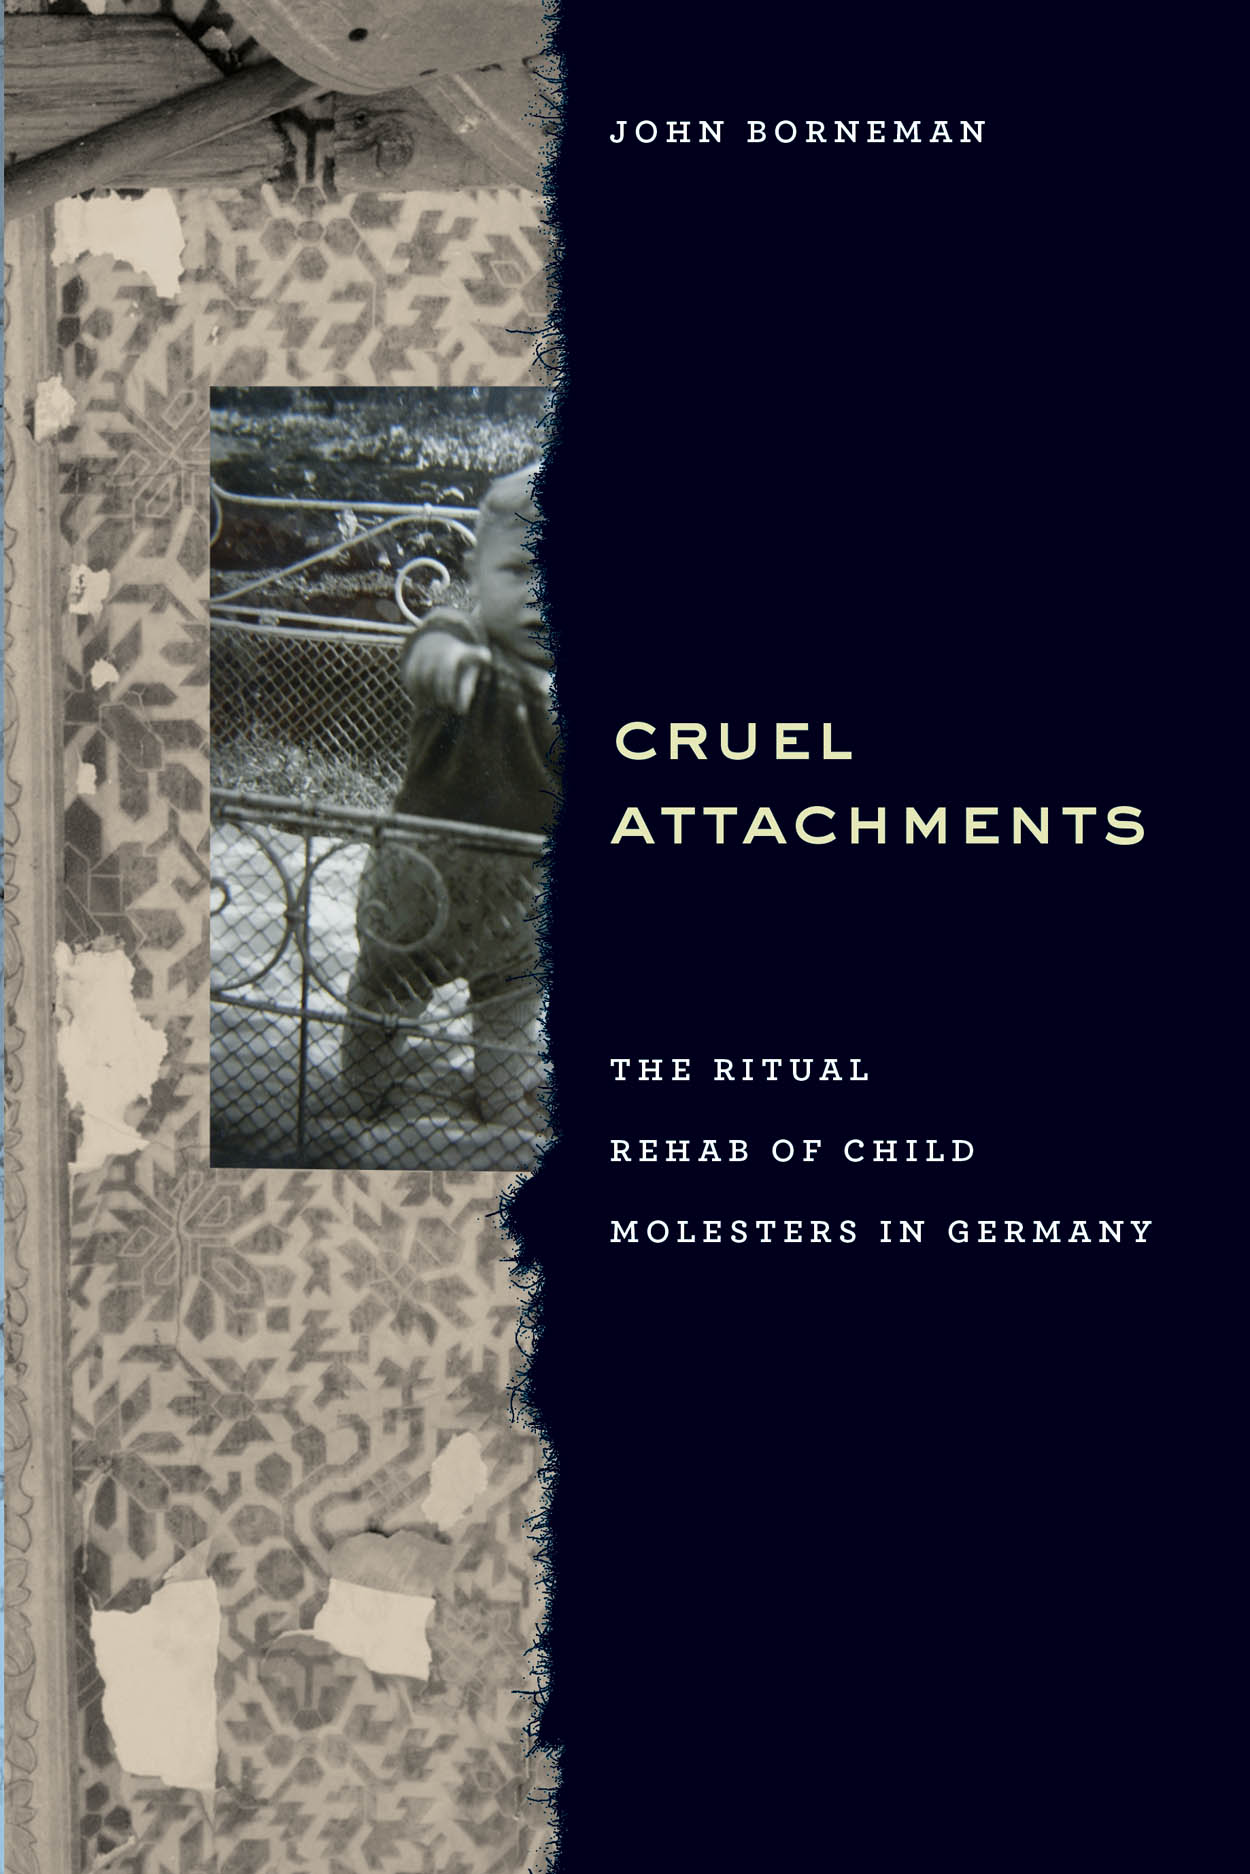 Cruel Attachments: The Ritual Rehab of Child Molesters in Germany